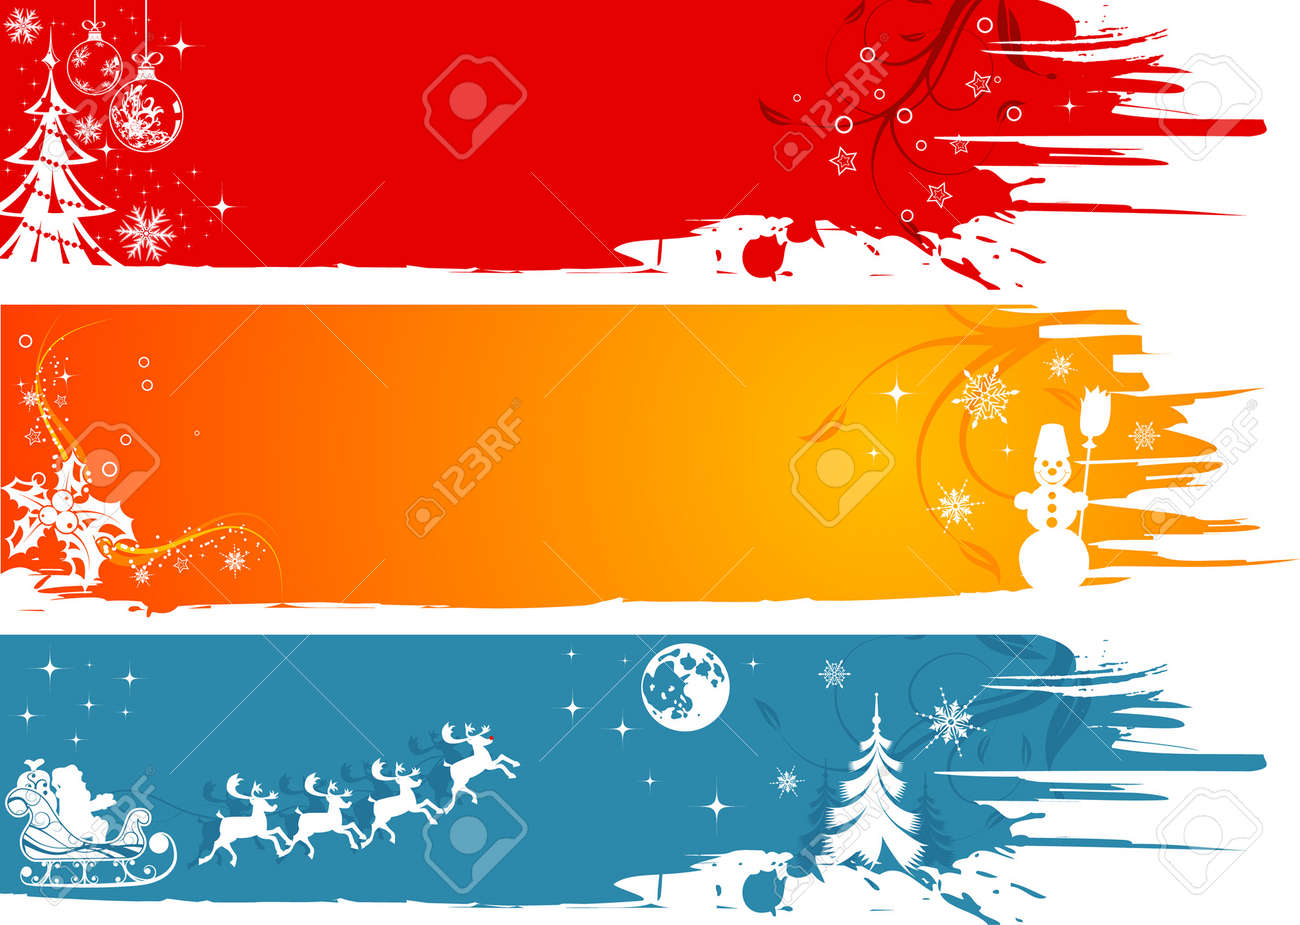 Three grunge Christmas frame with Santa, snowman, snowflakes, element for design, vector illustration Stock Vector - 3546164